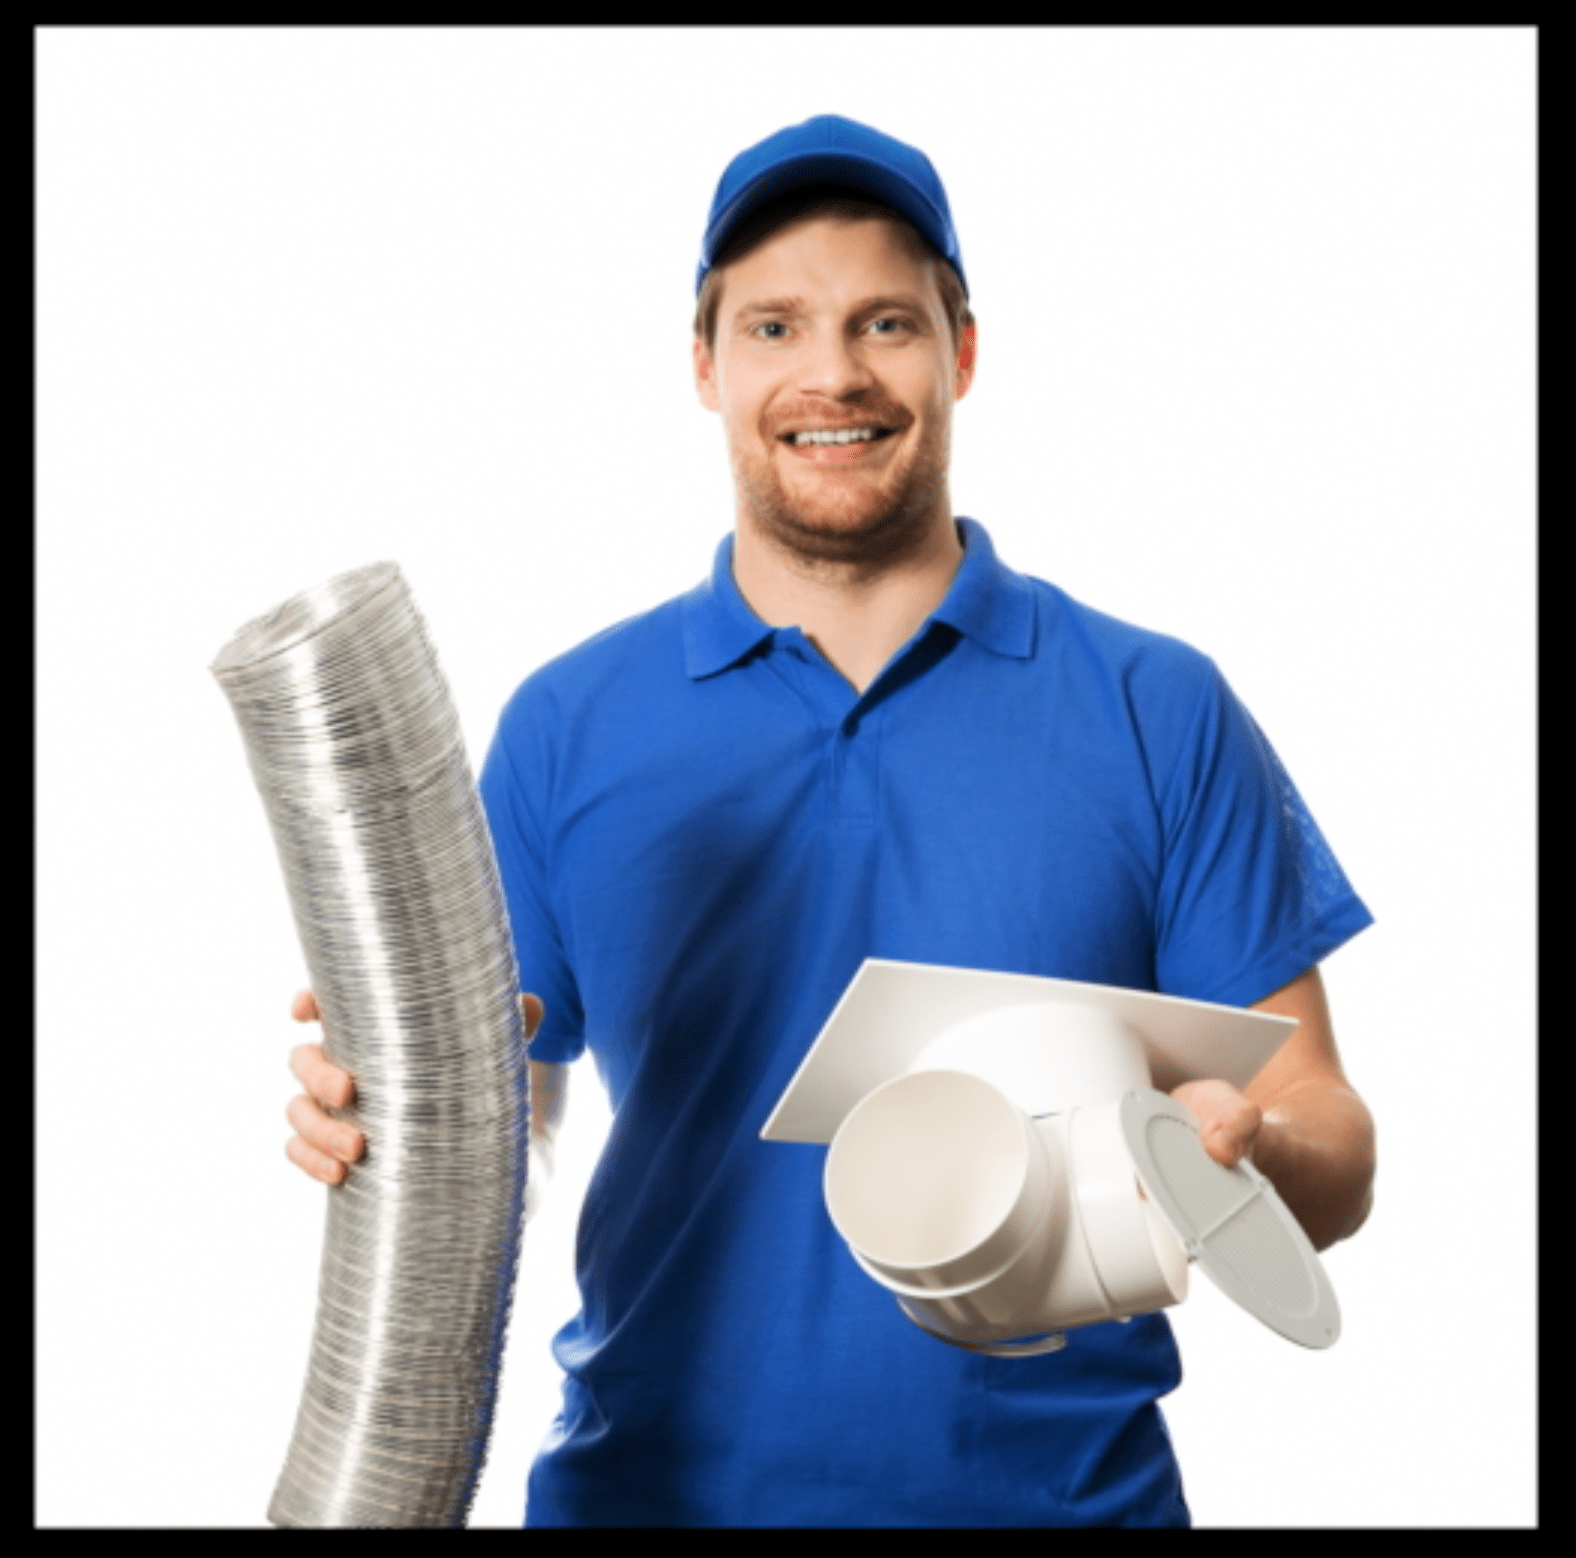 The best local San Diego heating and cooling services. If it's HVAC, or Air Conditioning Repair services your looking for in San Diego, then look no more!